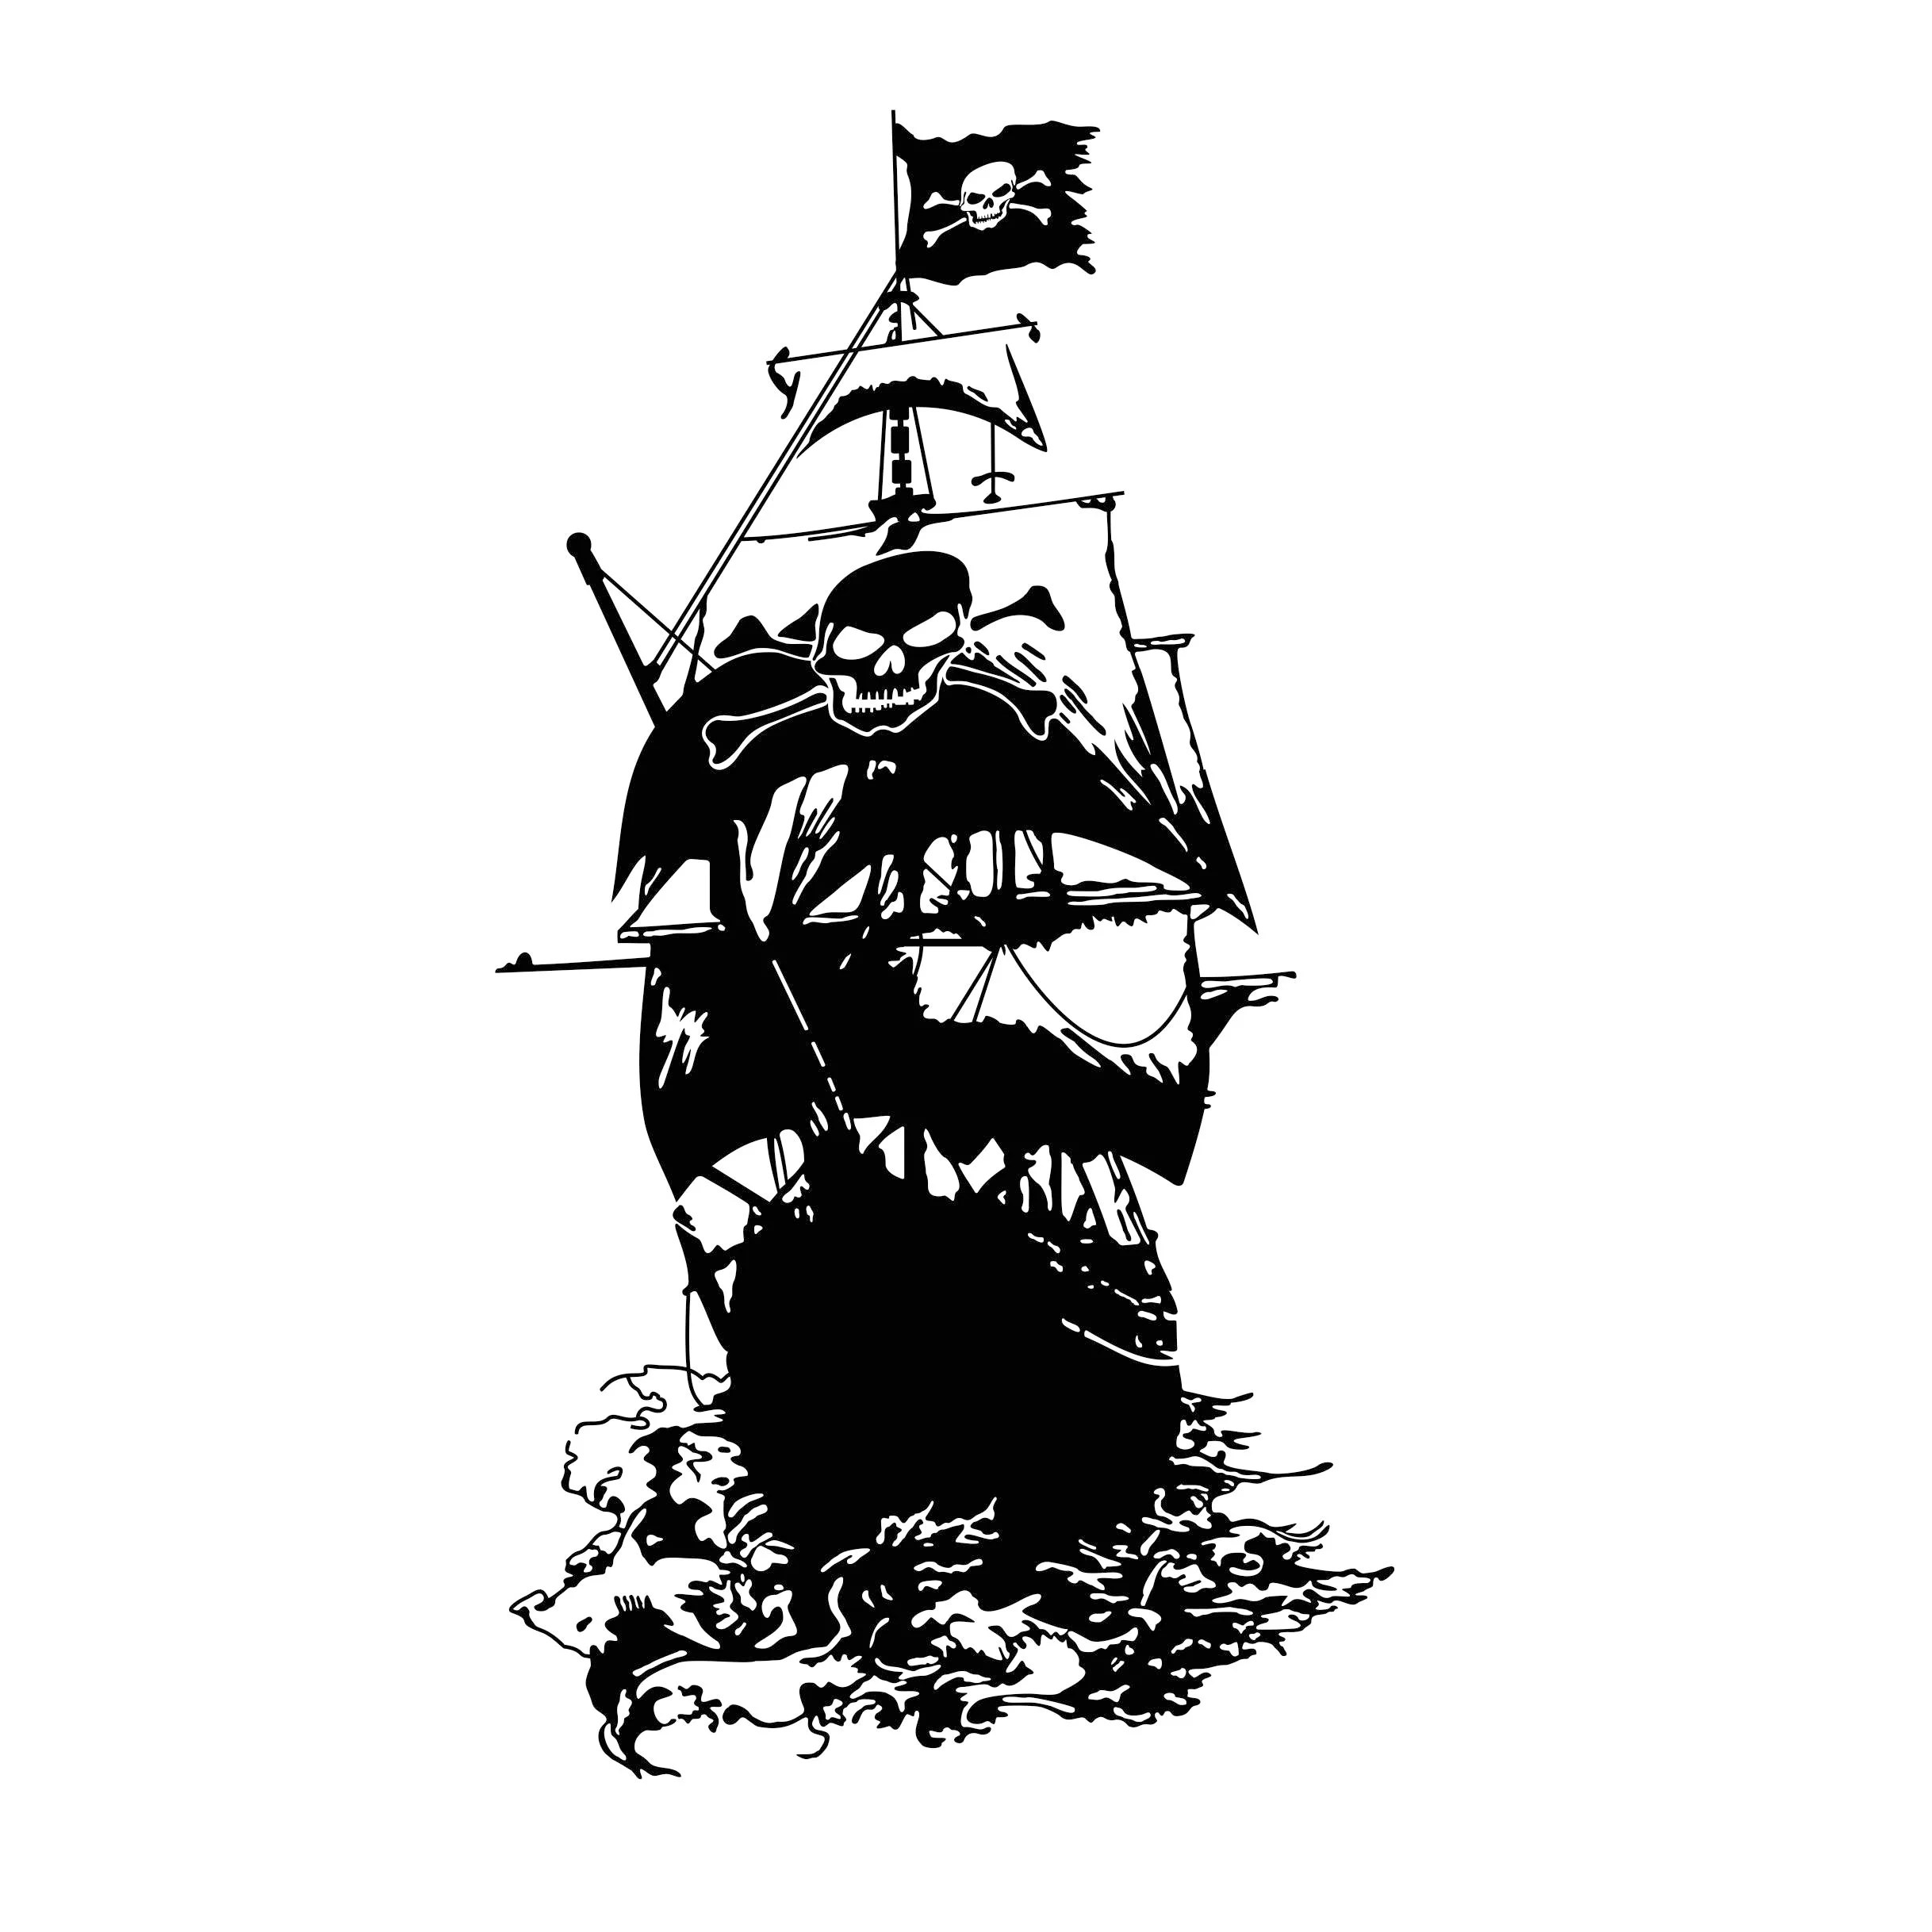 Pirate Ship Svg Viking Privateer Graphics Dxf Eps Cdr